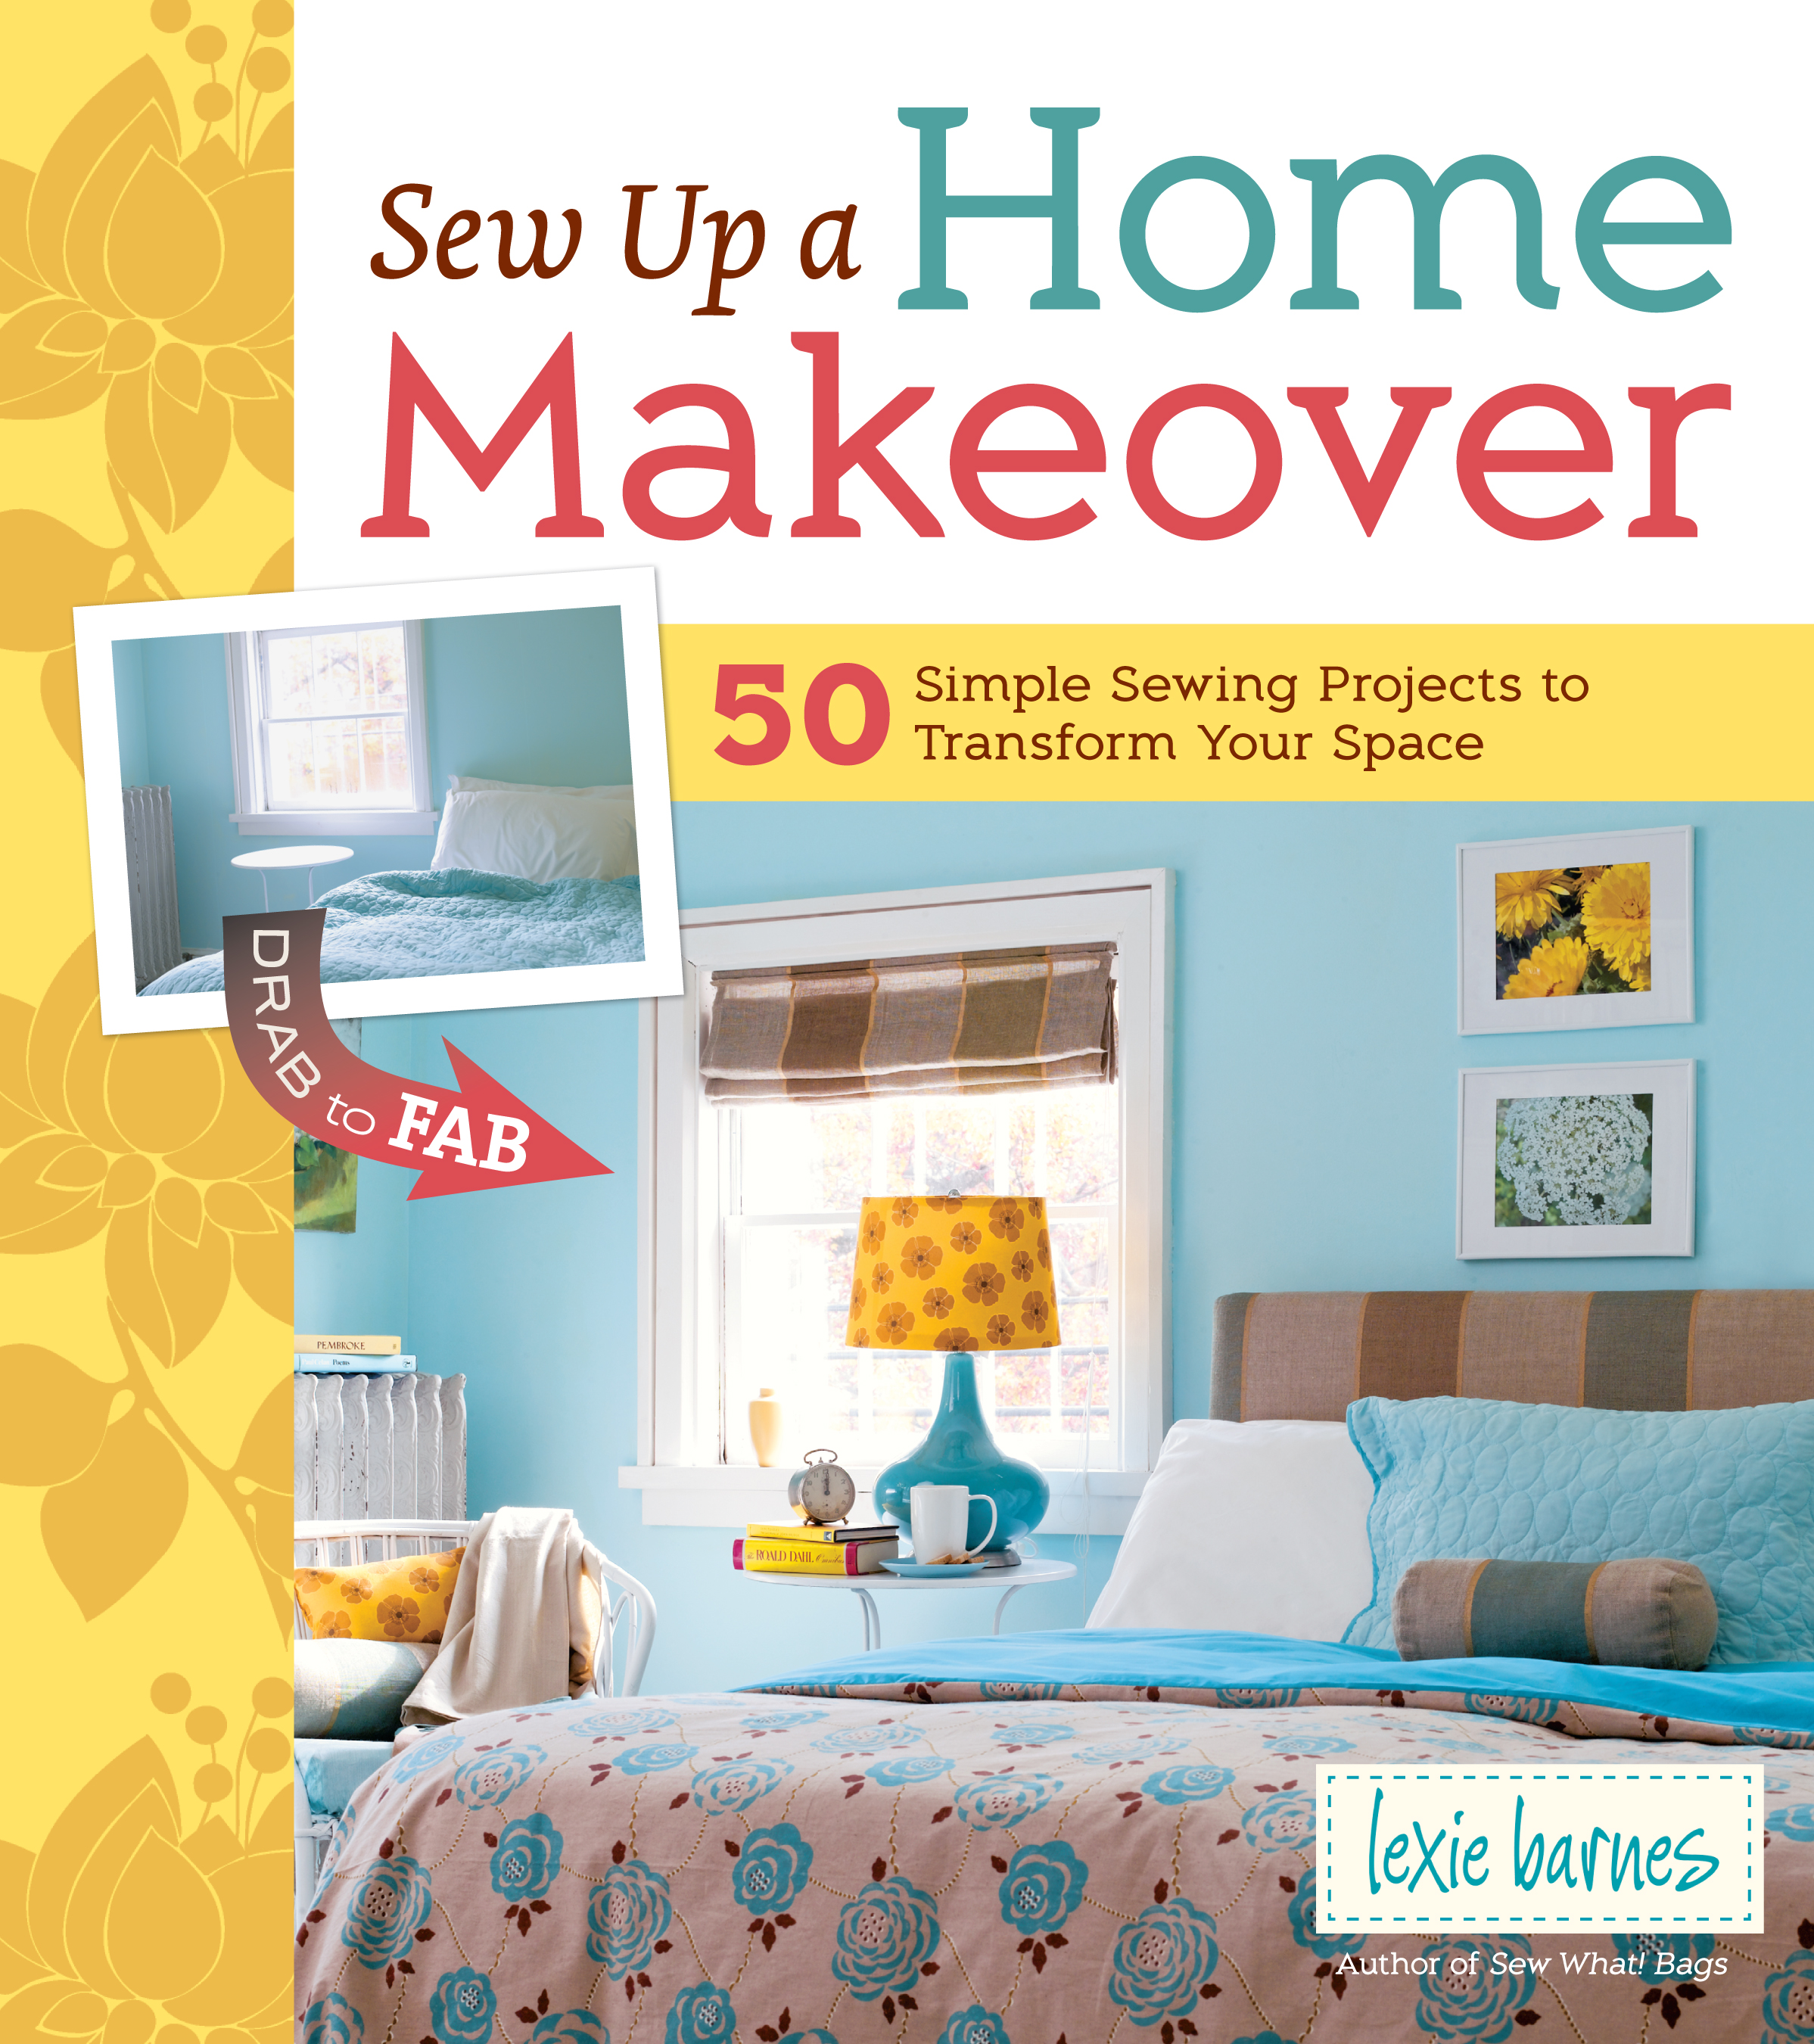 Sew Up a Home Makeover 50 Simple Sewing Projects to Transform Your Space - Lexie Barnes